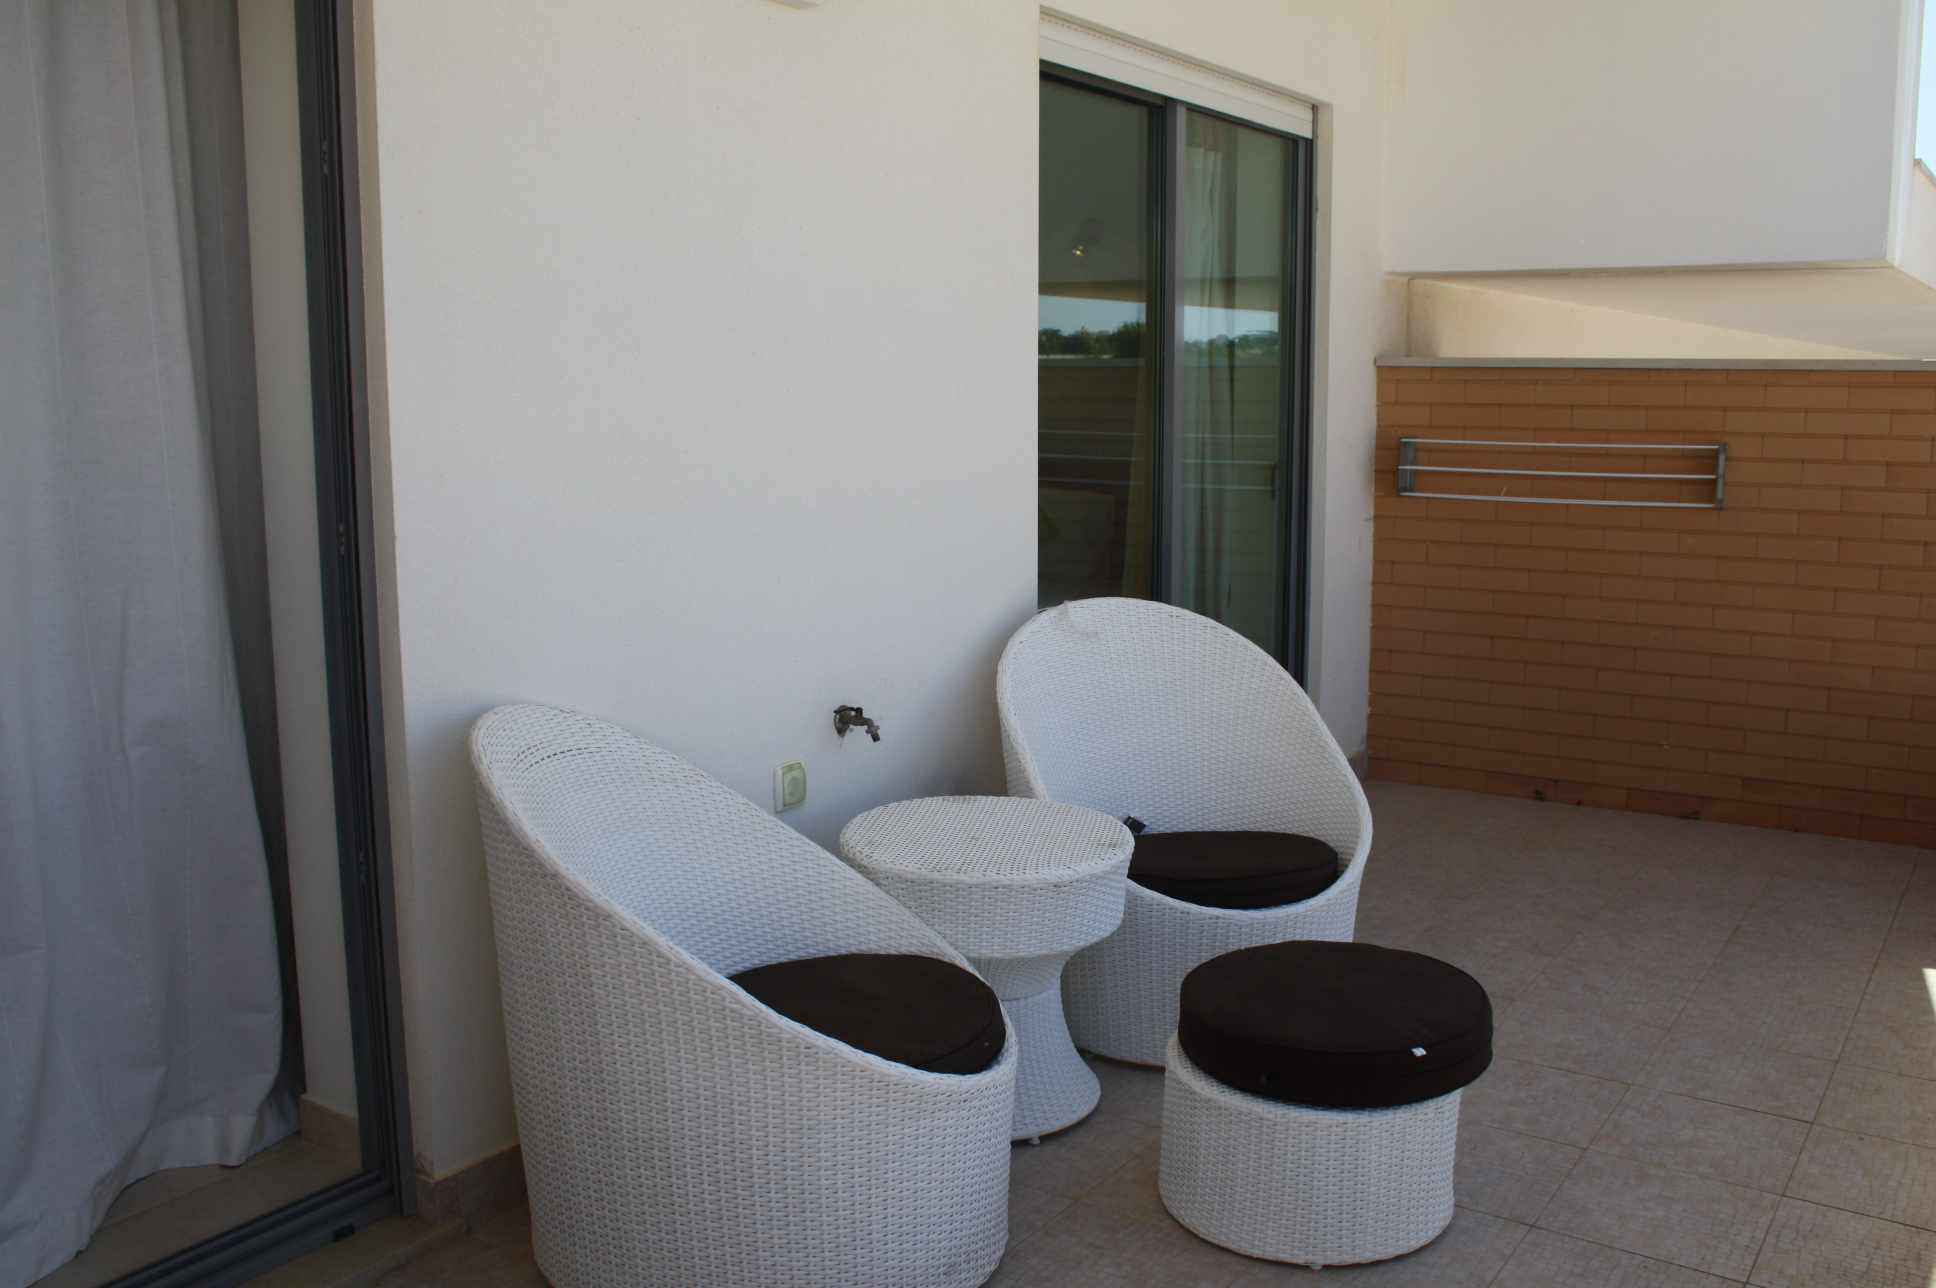 Rental Branqueria Albufeira AT035 Upstai